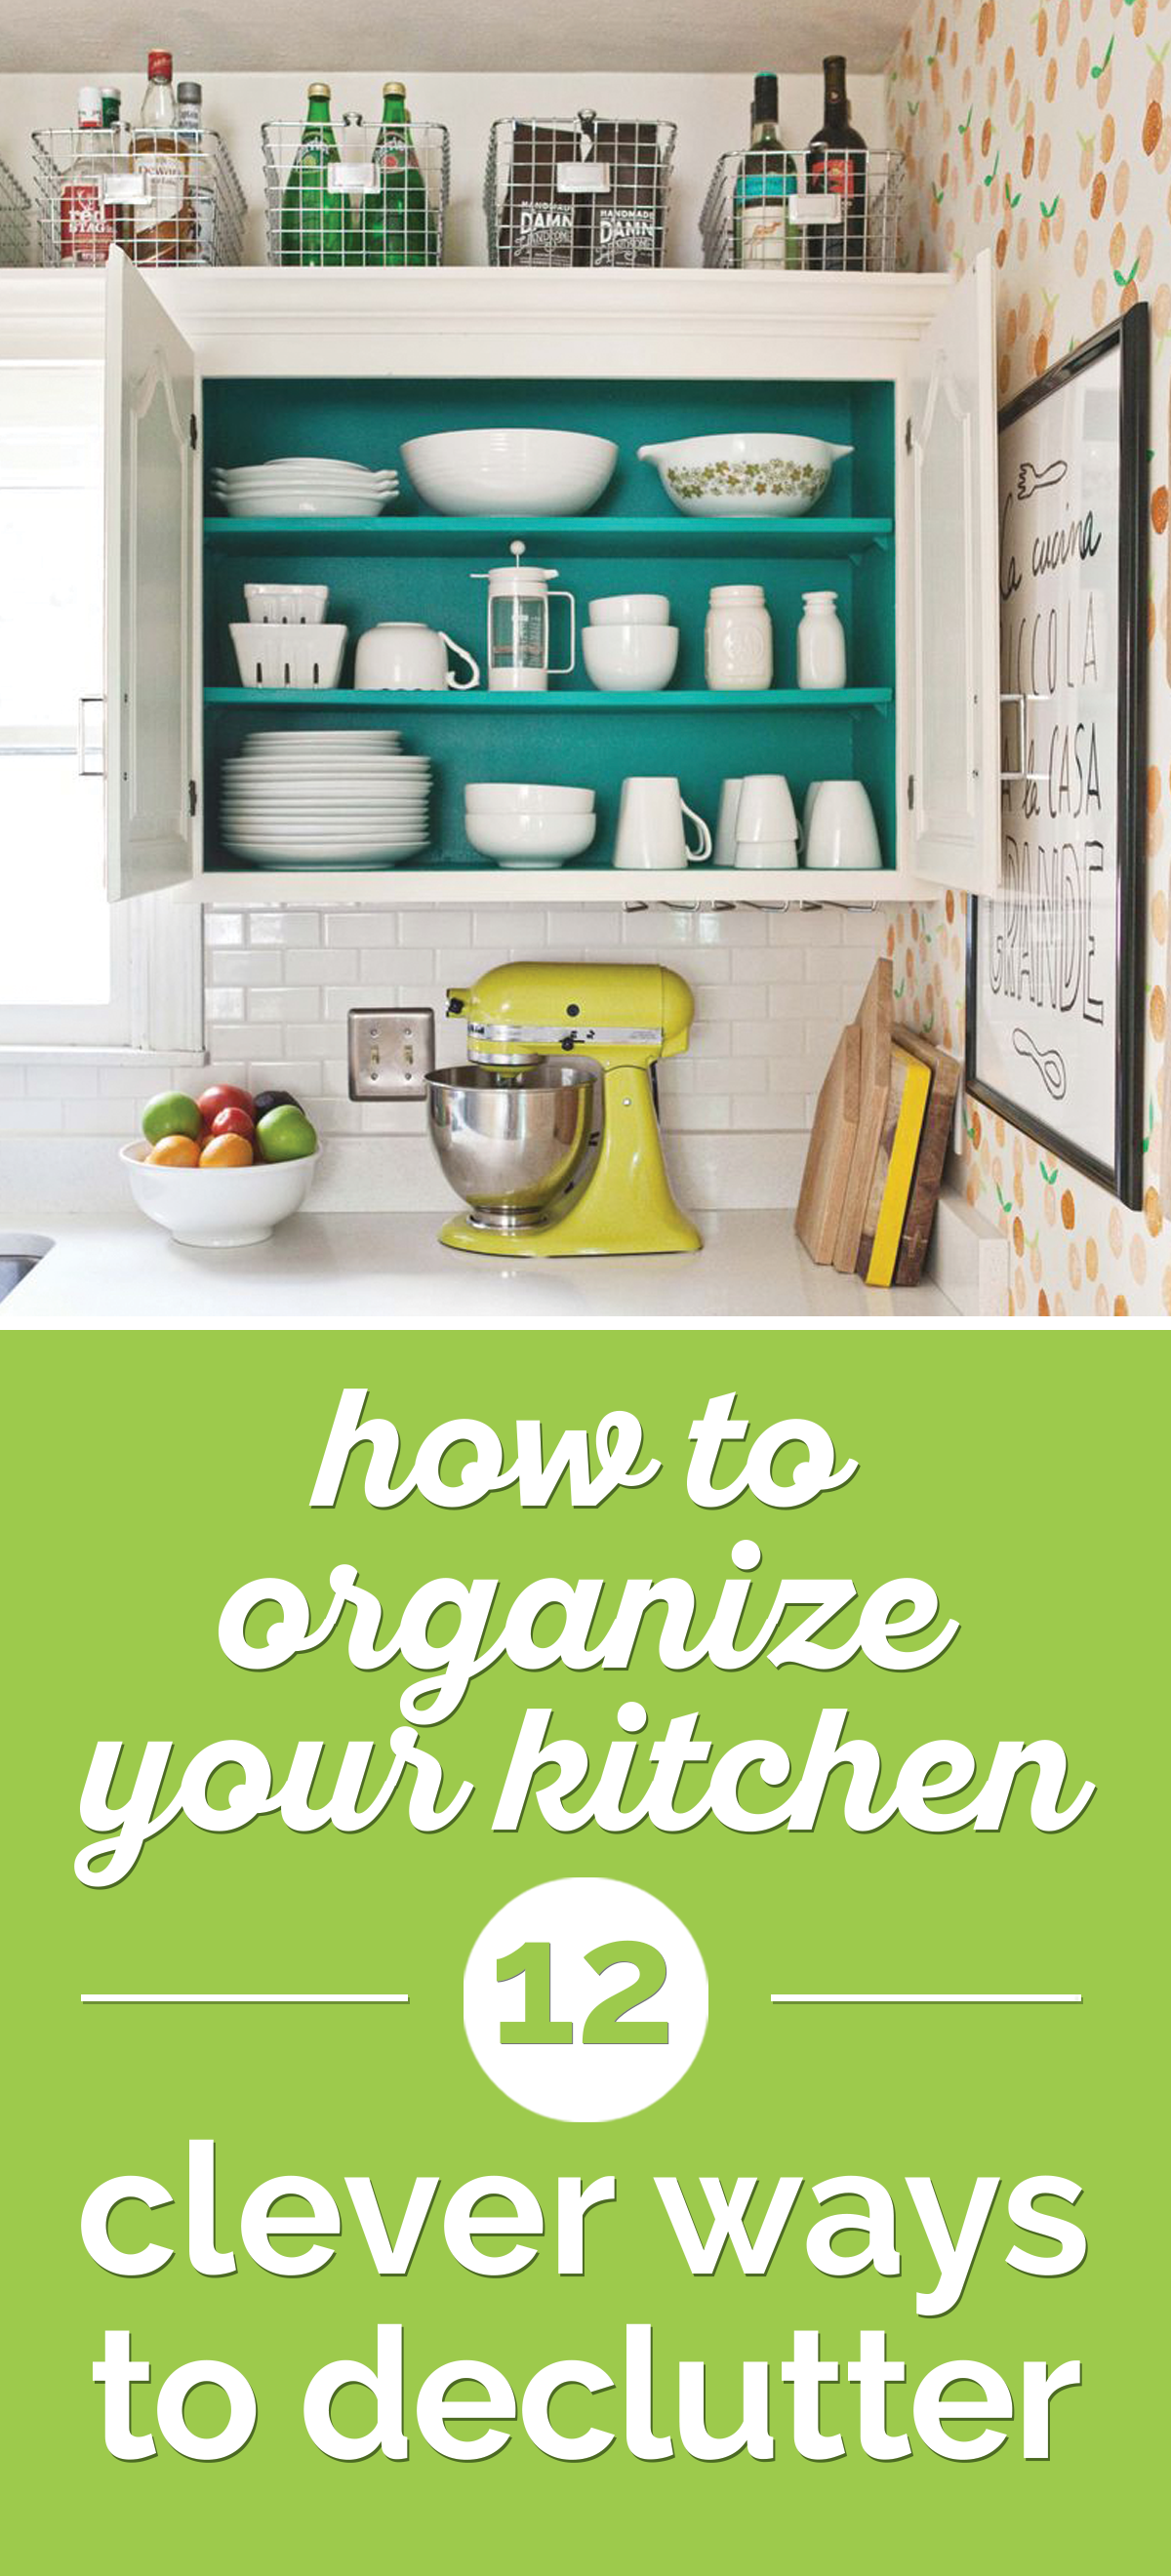 steps in organizing kitchen cabinets how to organize your kitchen 12 clever ways to declutter 26788